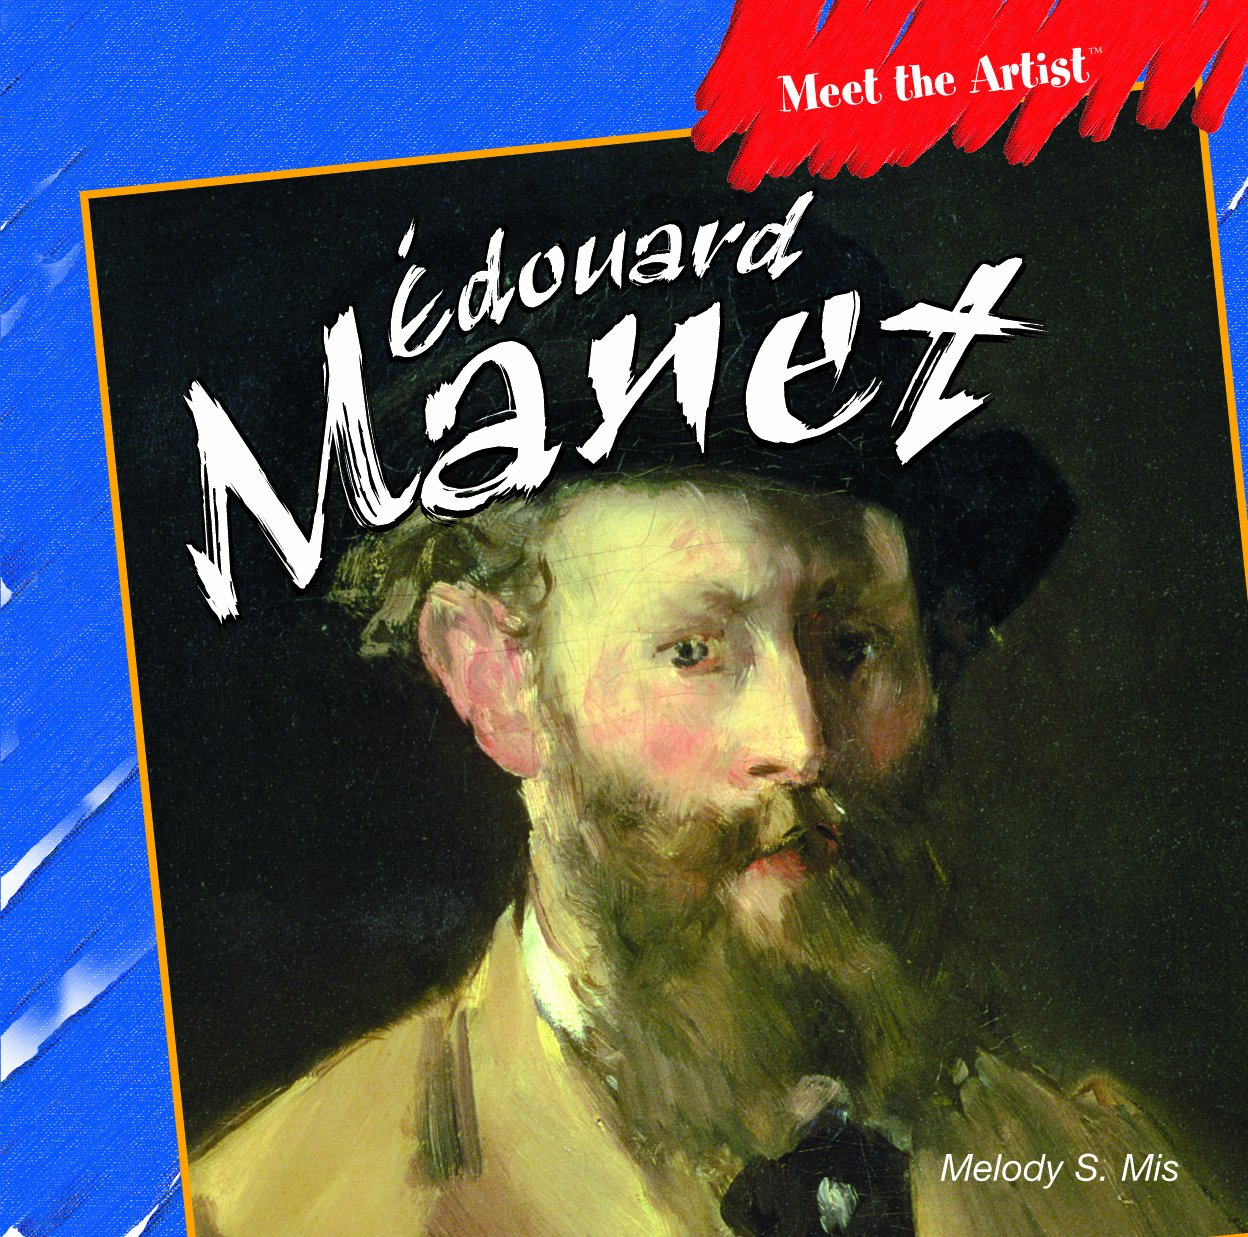 Edouard Manet (Meet the Artist)